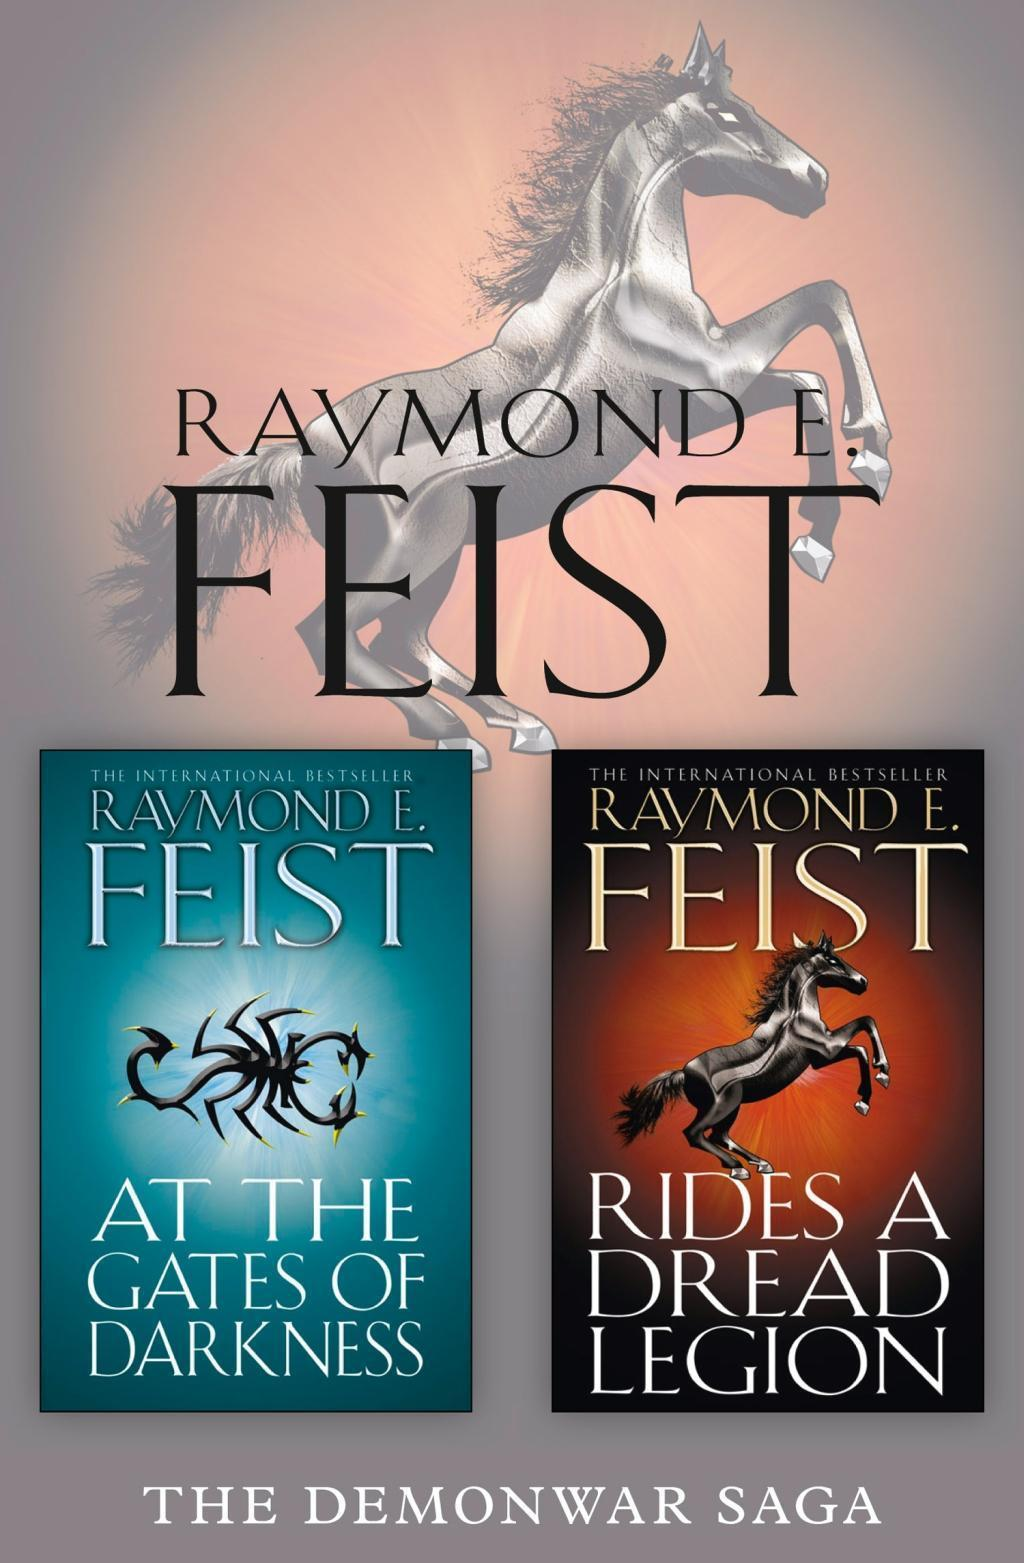 The Complete Demonwar Saga 2-Book Collection: Rides a Dread Legion, At the Gates of Darkness